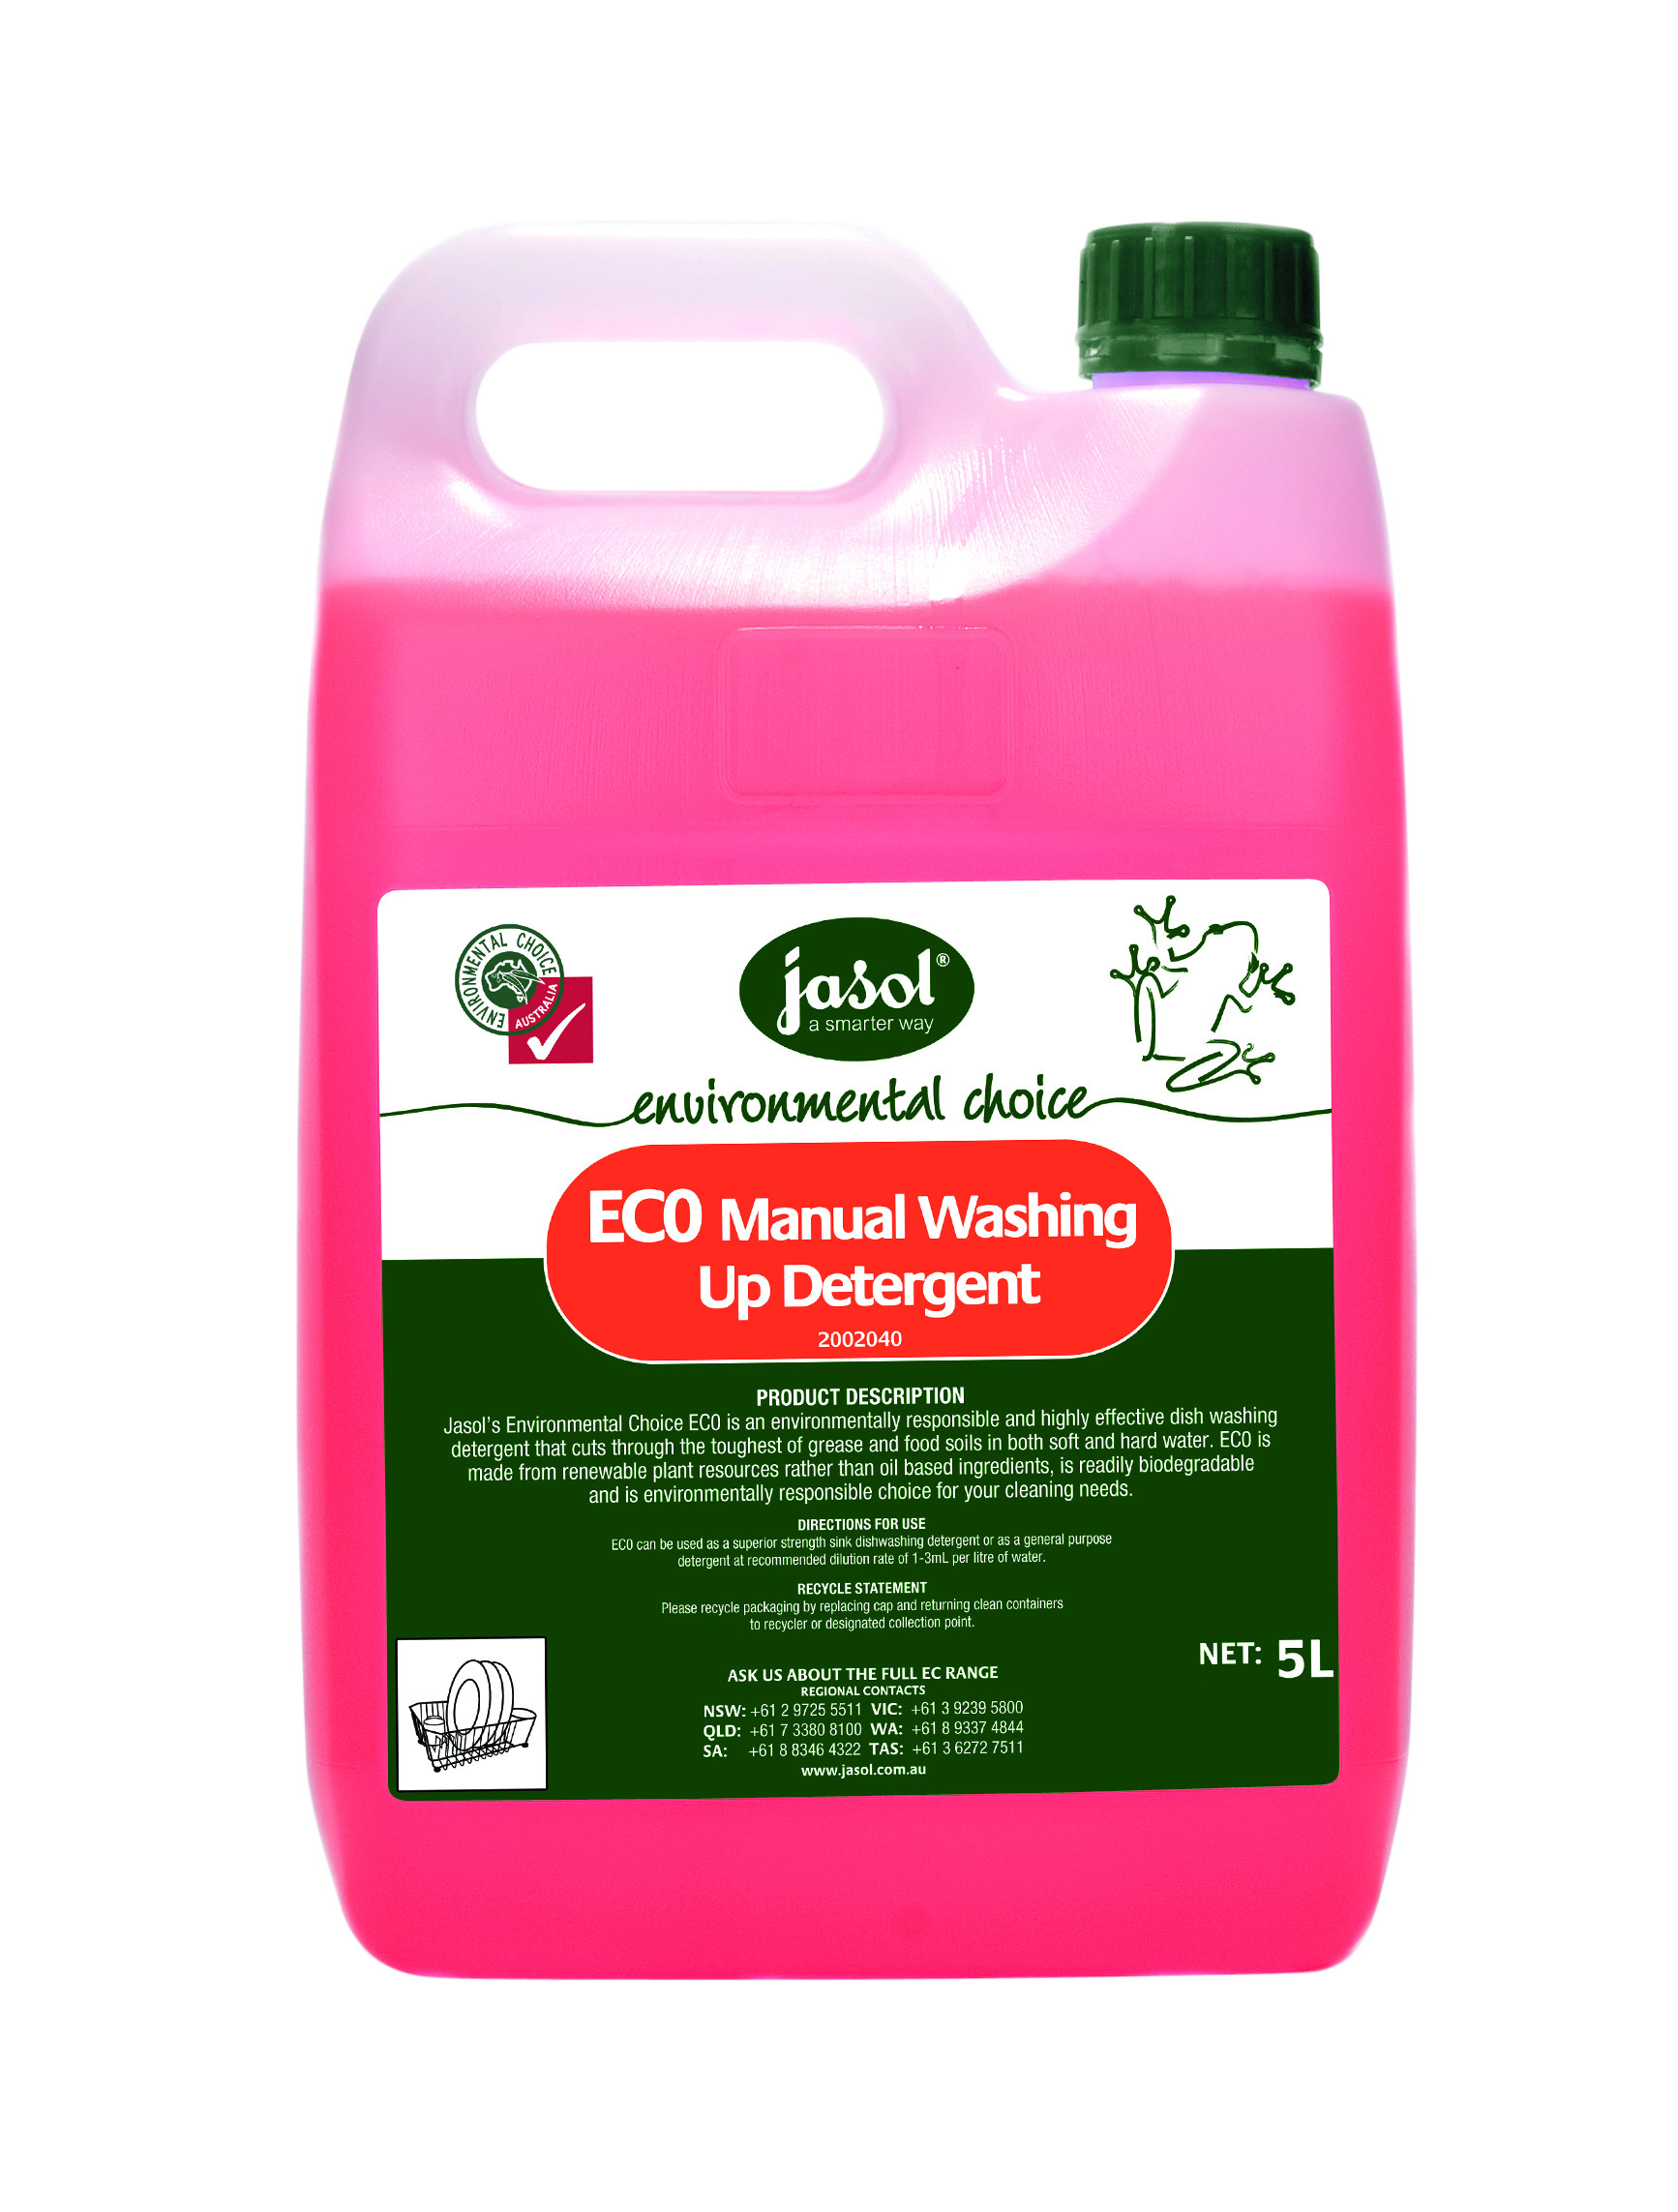 EC0 MANUAL WASHING UP DETERGENT